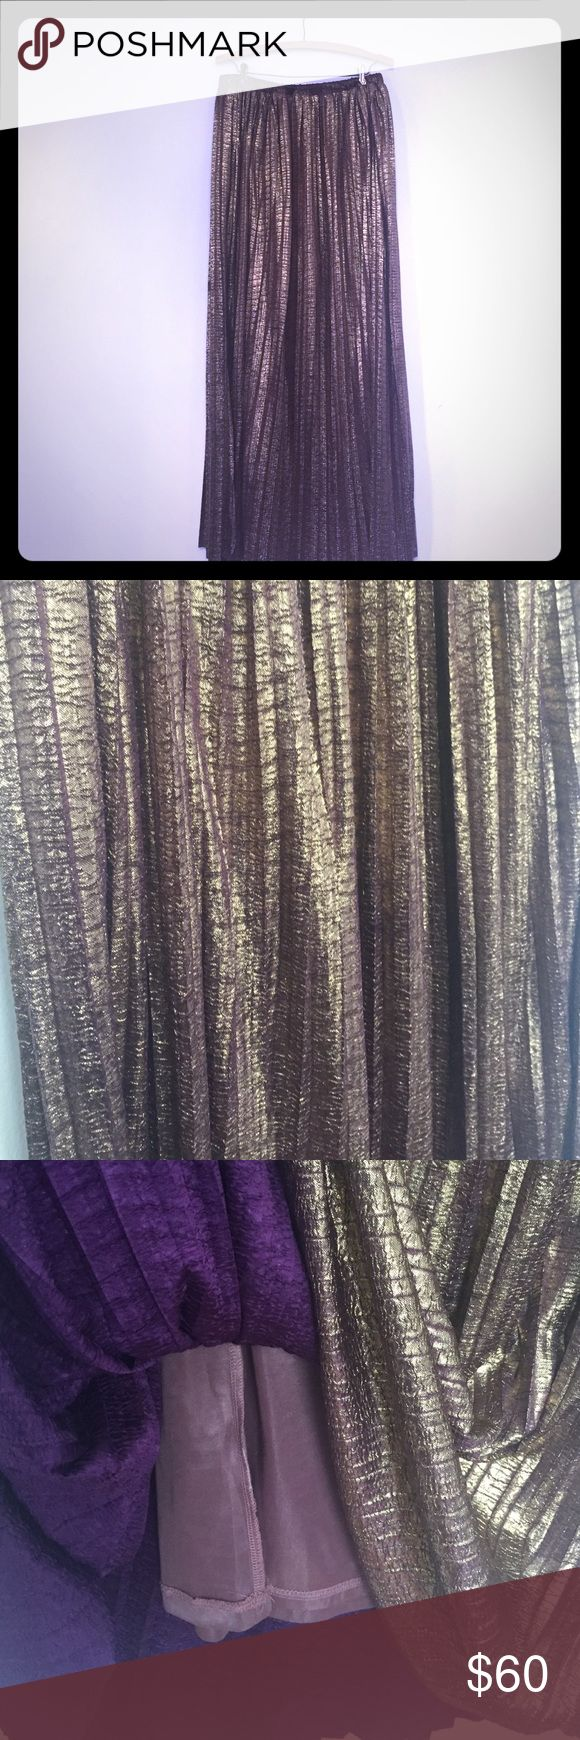 "Urban Outfitters Metallic Purple Maxi Skirt Beautiful flowy metallic purple maxi skirt with elastic purchased via Urban Outfitters. Women's size medium- but can fit a large or xl. Gently used condition - 41"" long. Urban Outfitters Skirts Maxi"